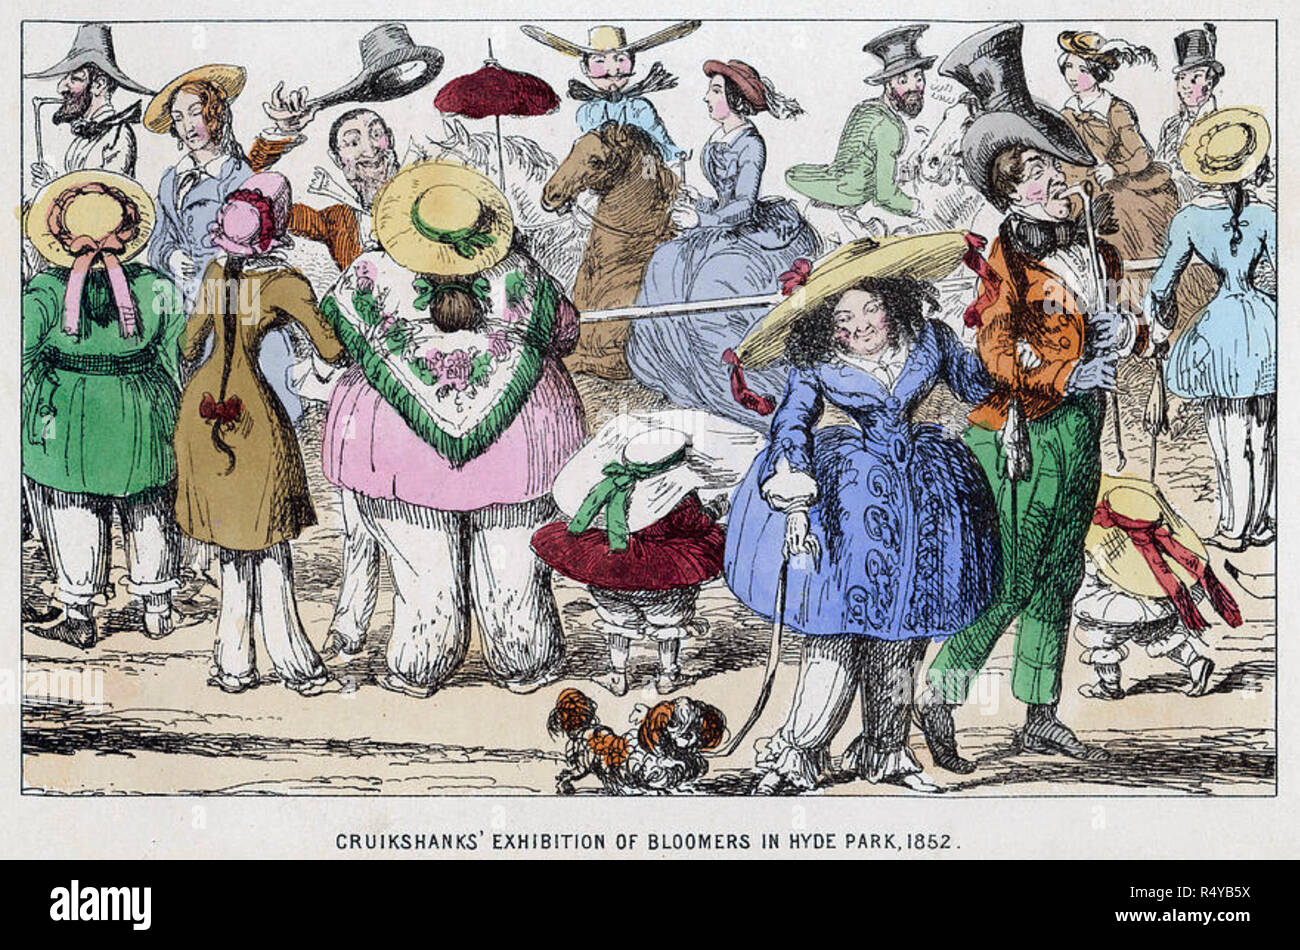 GEORGE CRUIKSHANK (1792-1878) English caracaturist. 'Exhibition of Bloomers in  Hyde Park 1852' - Stock Image